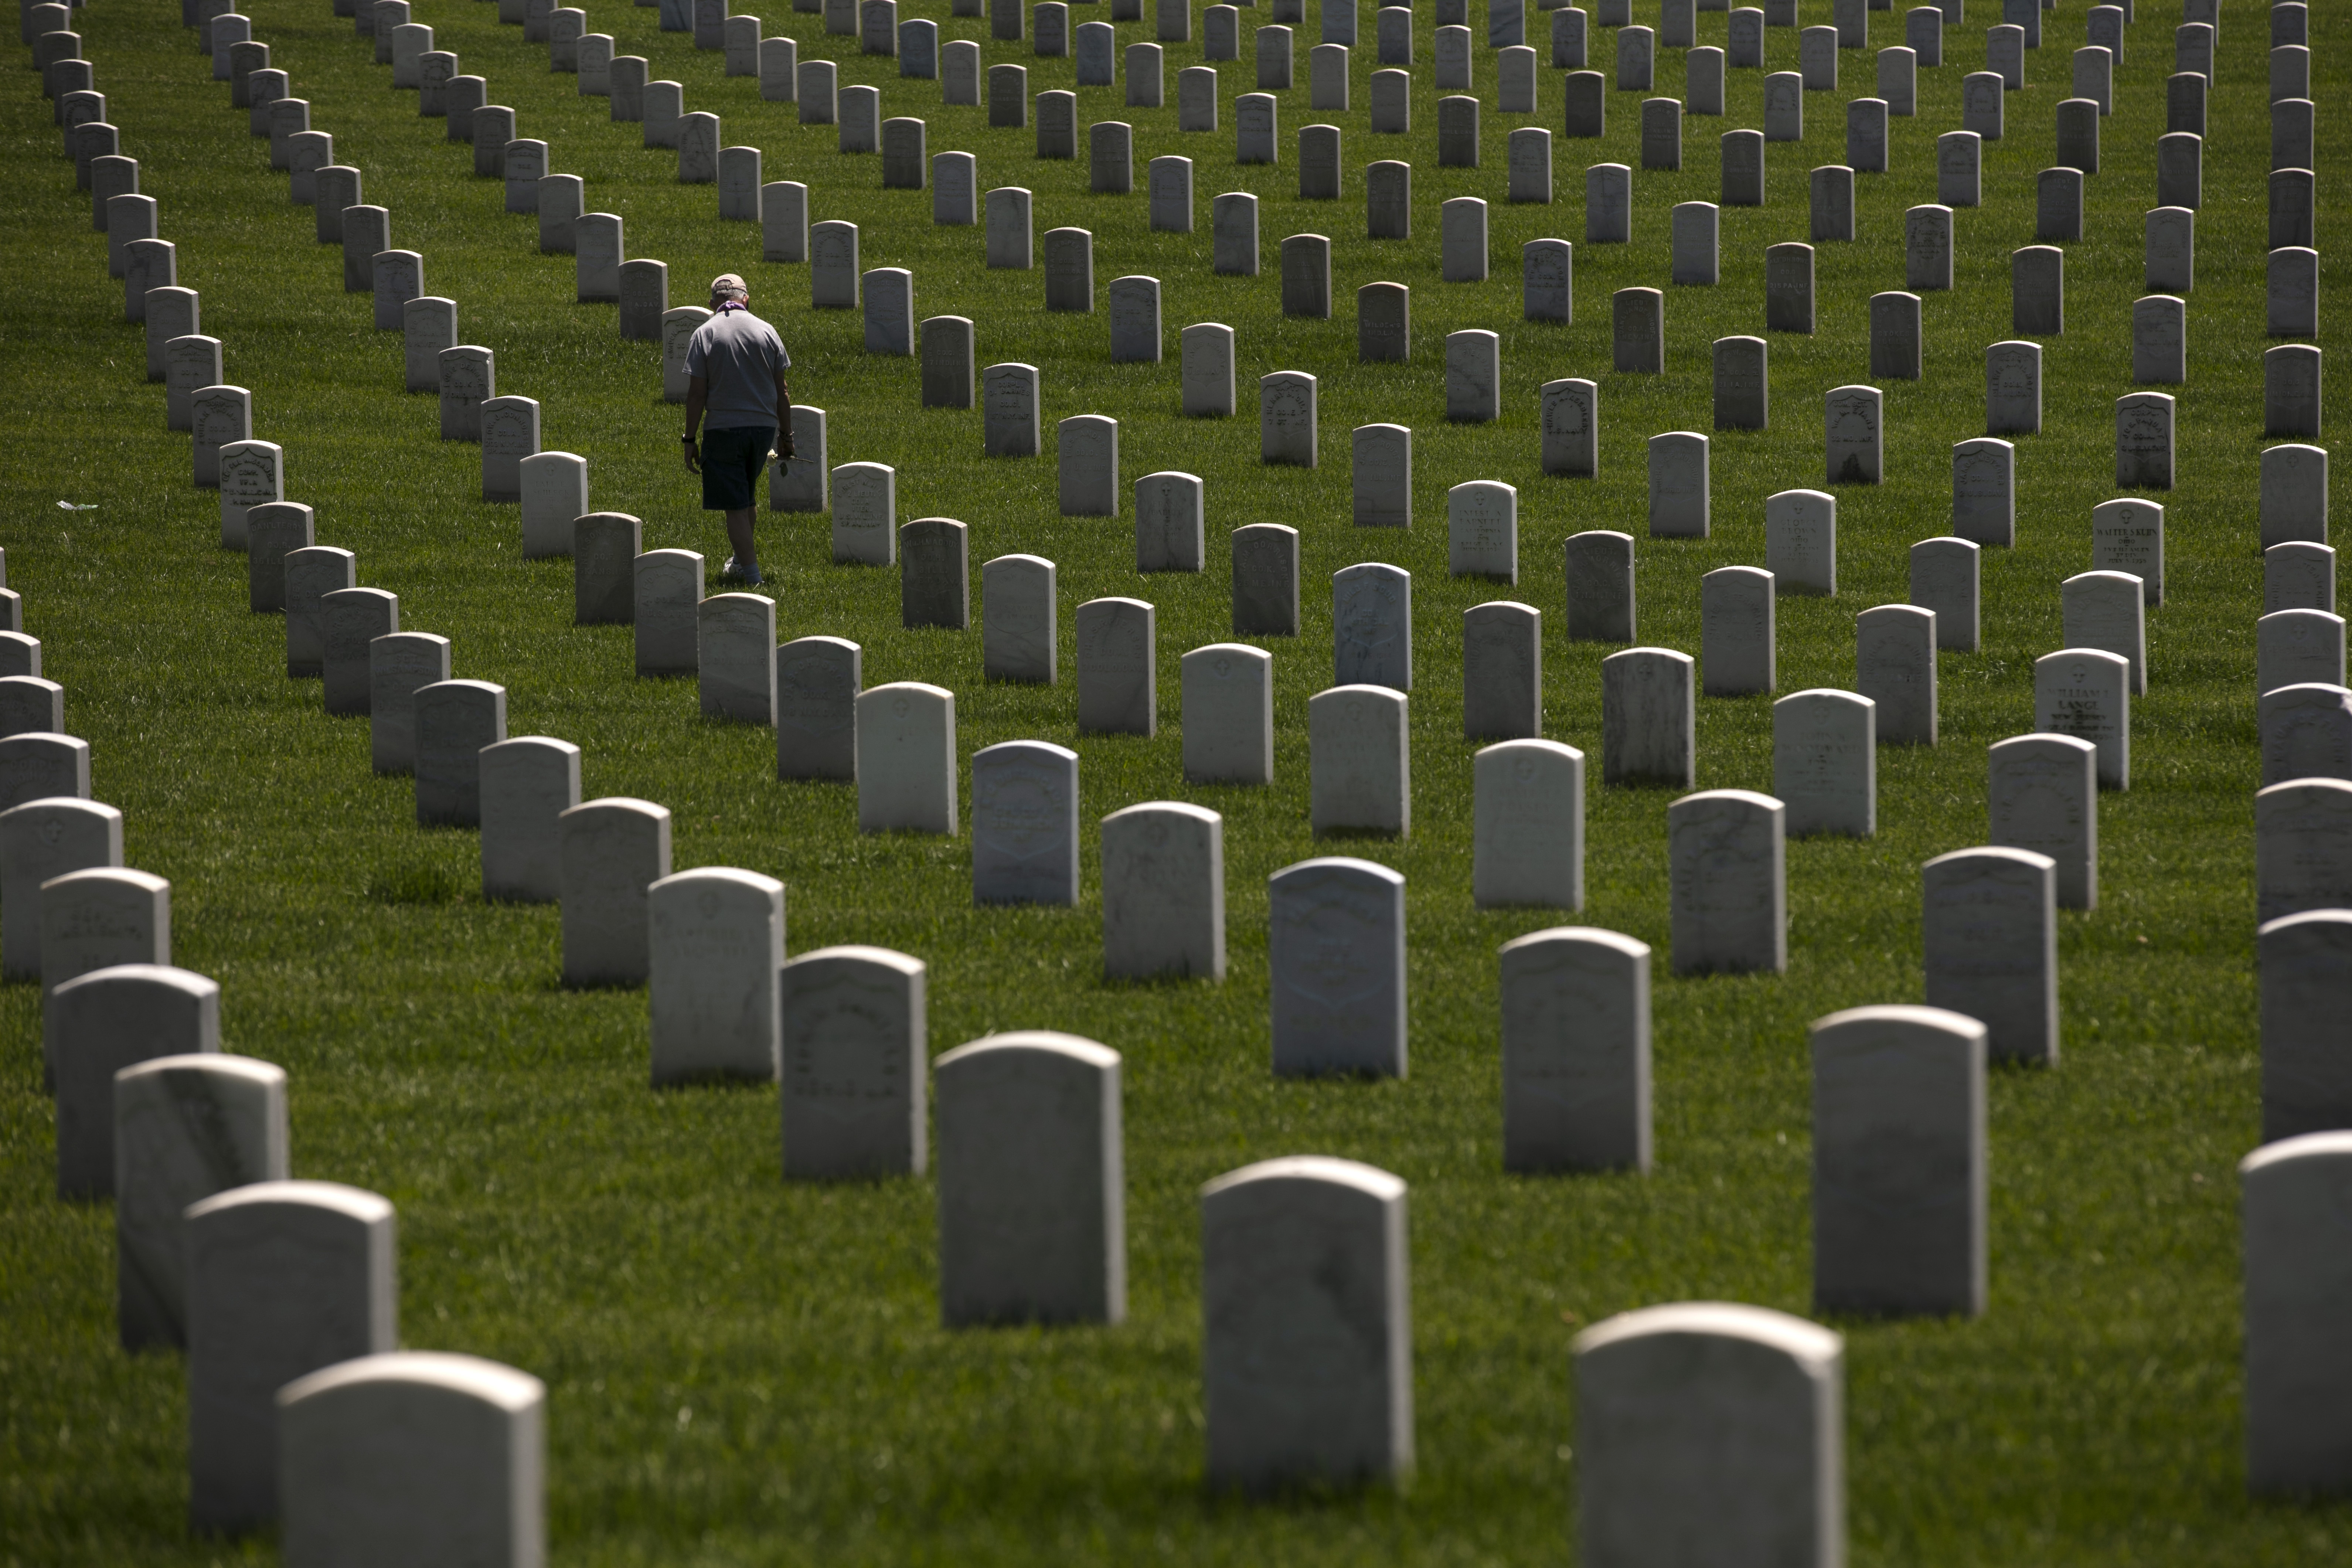 John Bickler visits the Los Angeles National Cemetery in Los Angeles, Monday, May 25, 2020. The annual Memorial Day commemoration was held without the public in attendance due to the coronavirus outbreak. (AP Photo/Jae C. Hong)